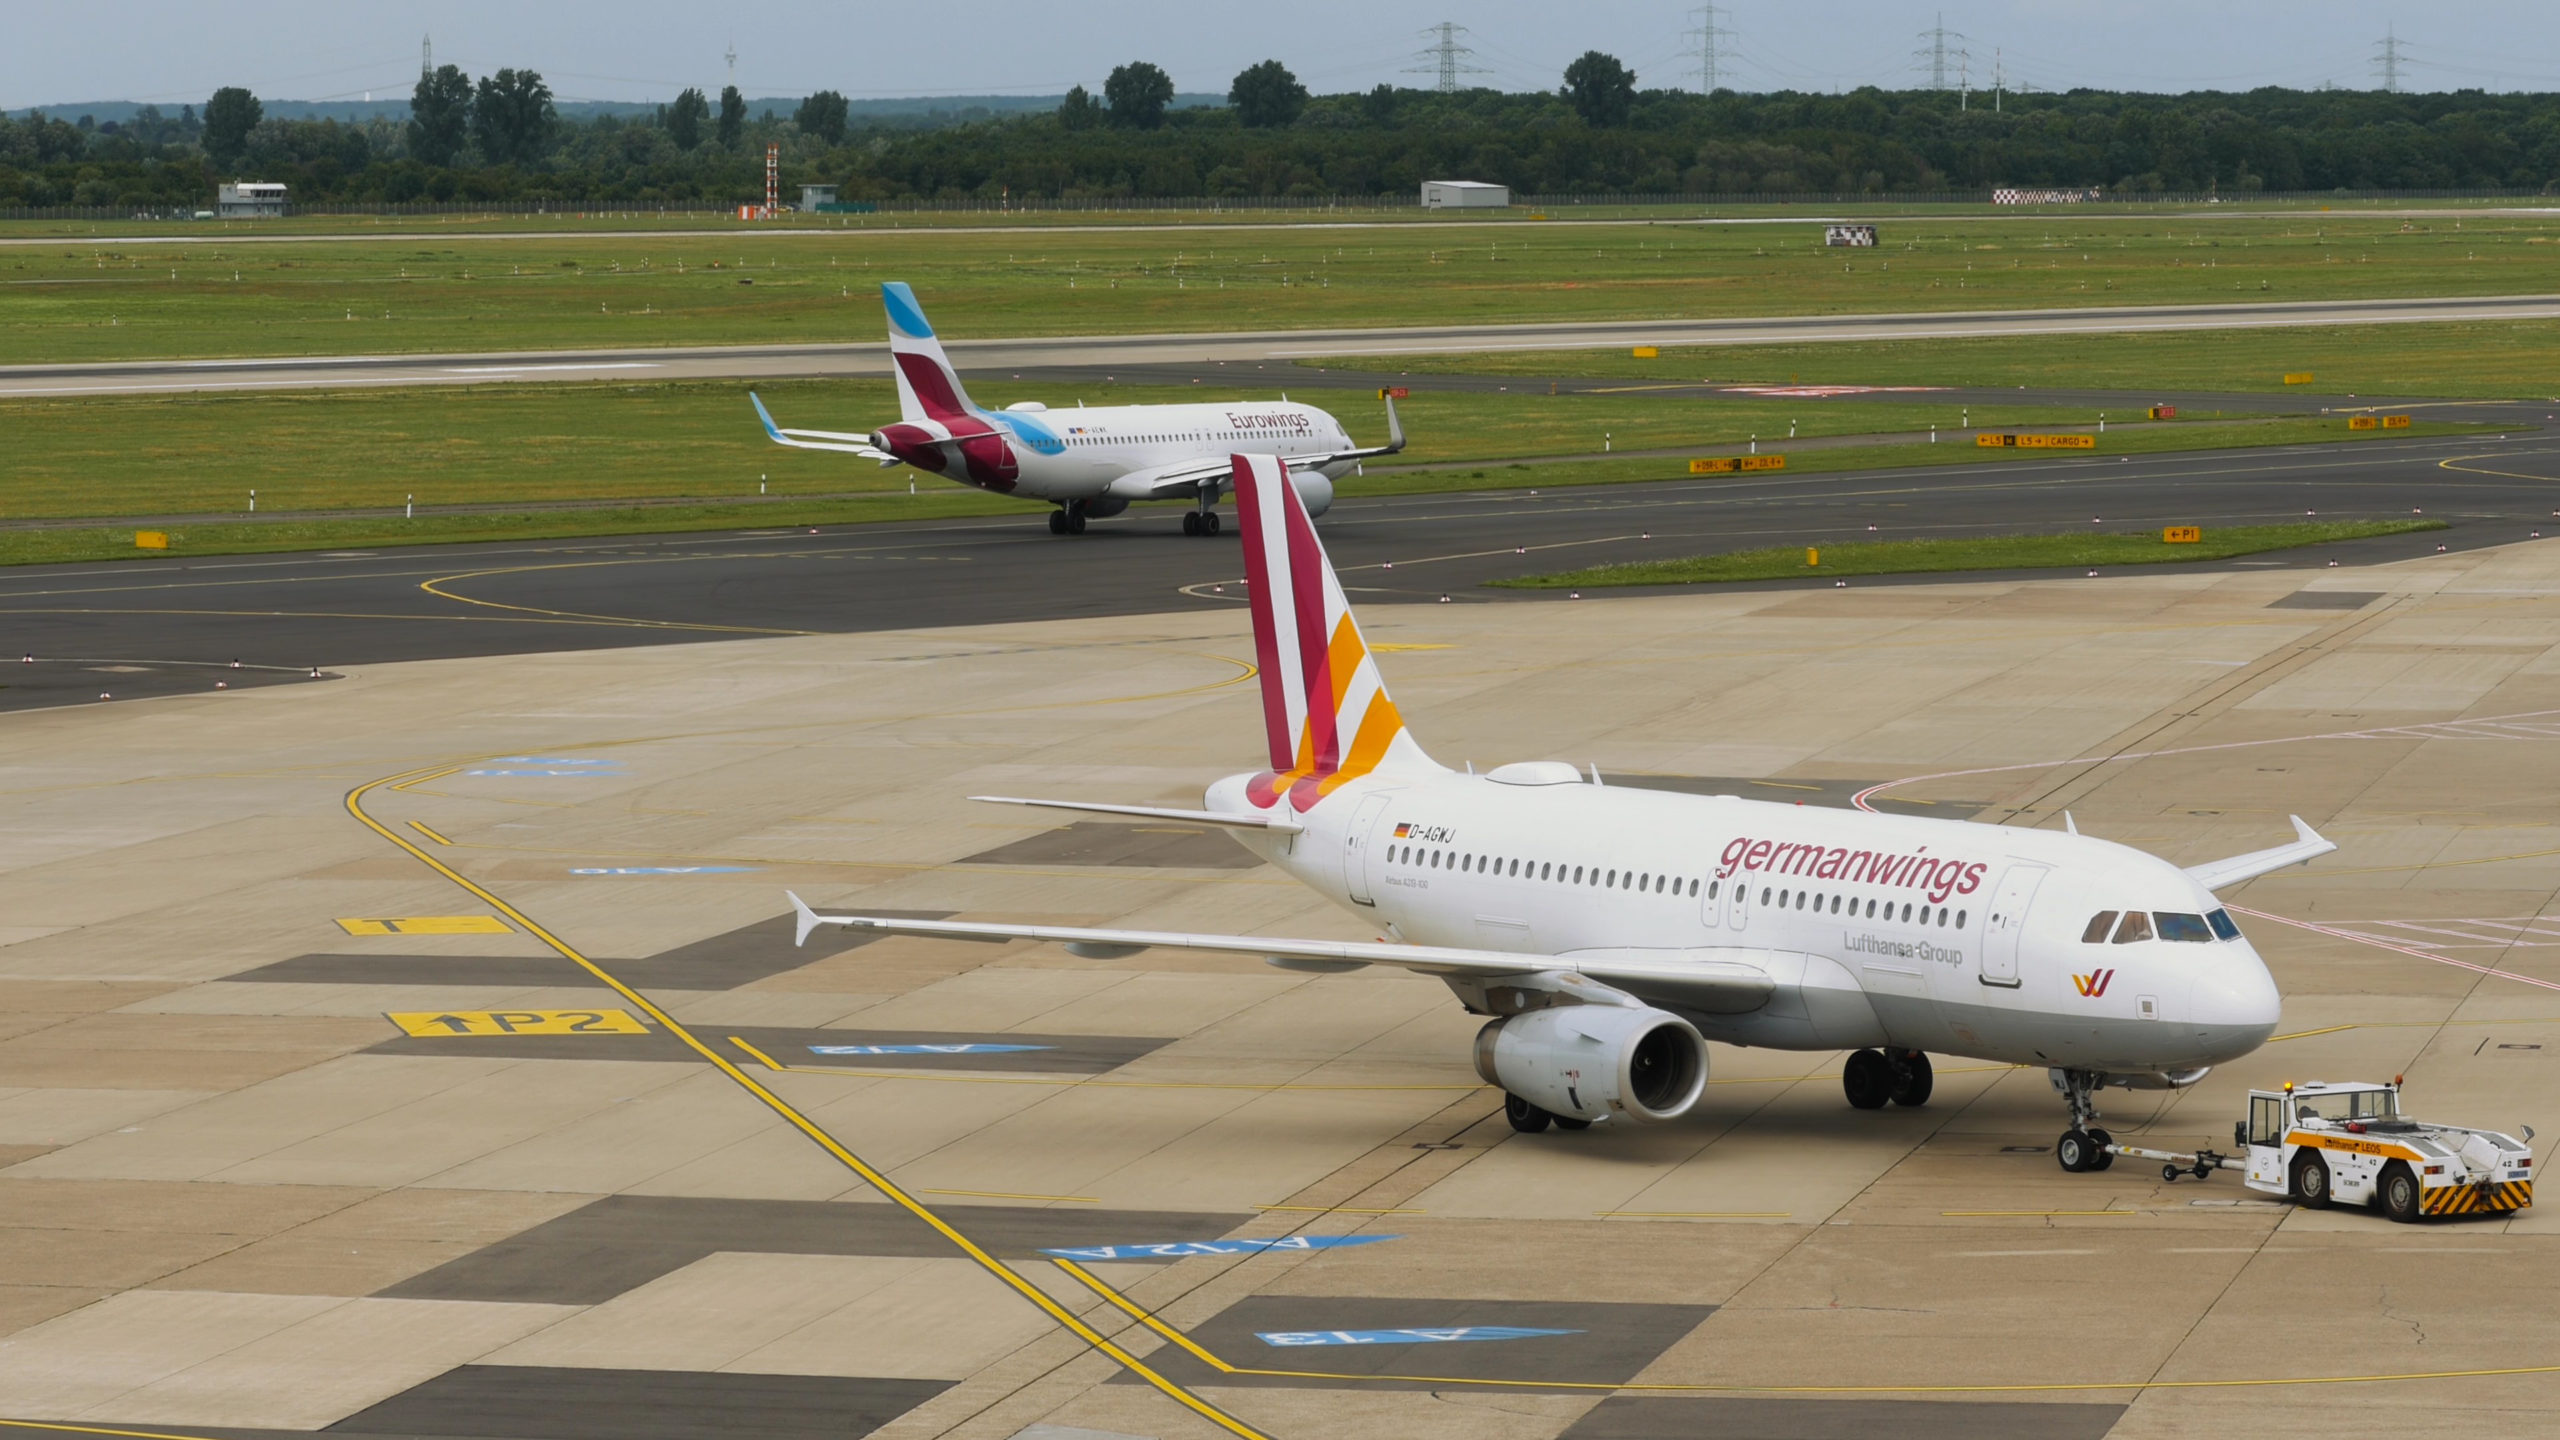 Airbus A320 D-AGWJ of Germanwings is towing by vehicle on airfield before departure